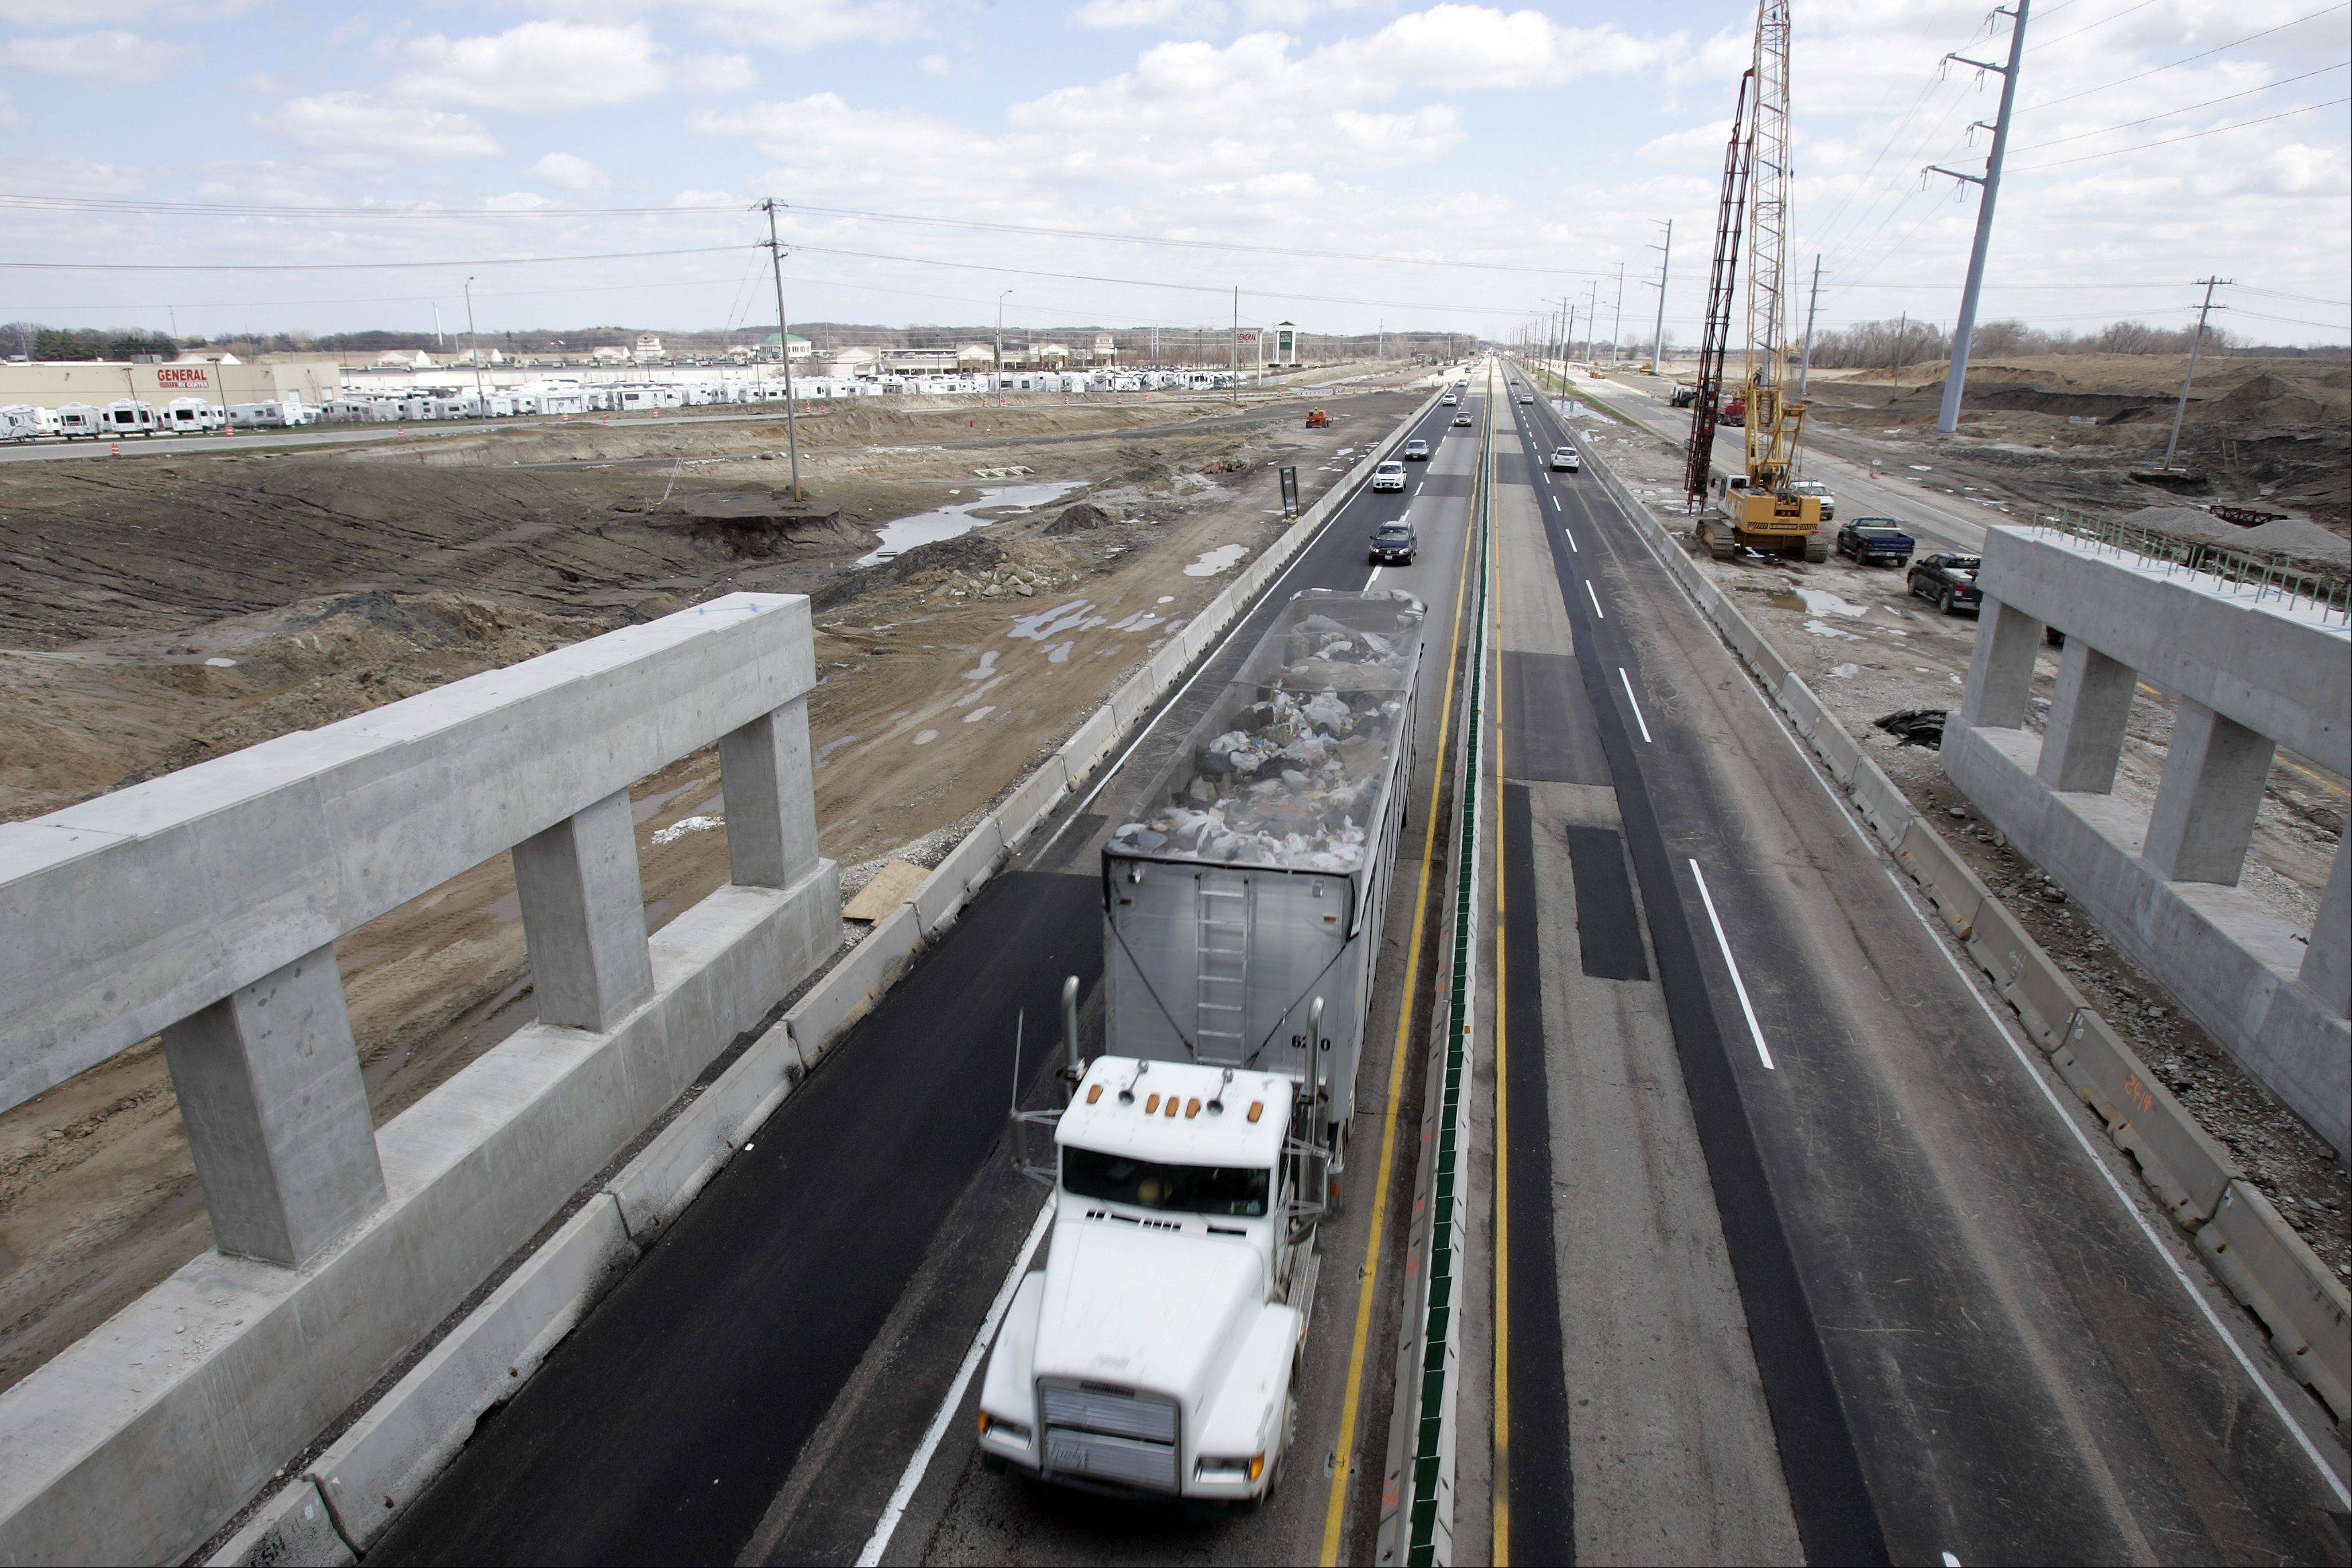 Daily Herald file photoExpect more work on I-90 in 2014 as the Illinois tollway revs up a 15-year construction program.